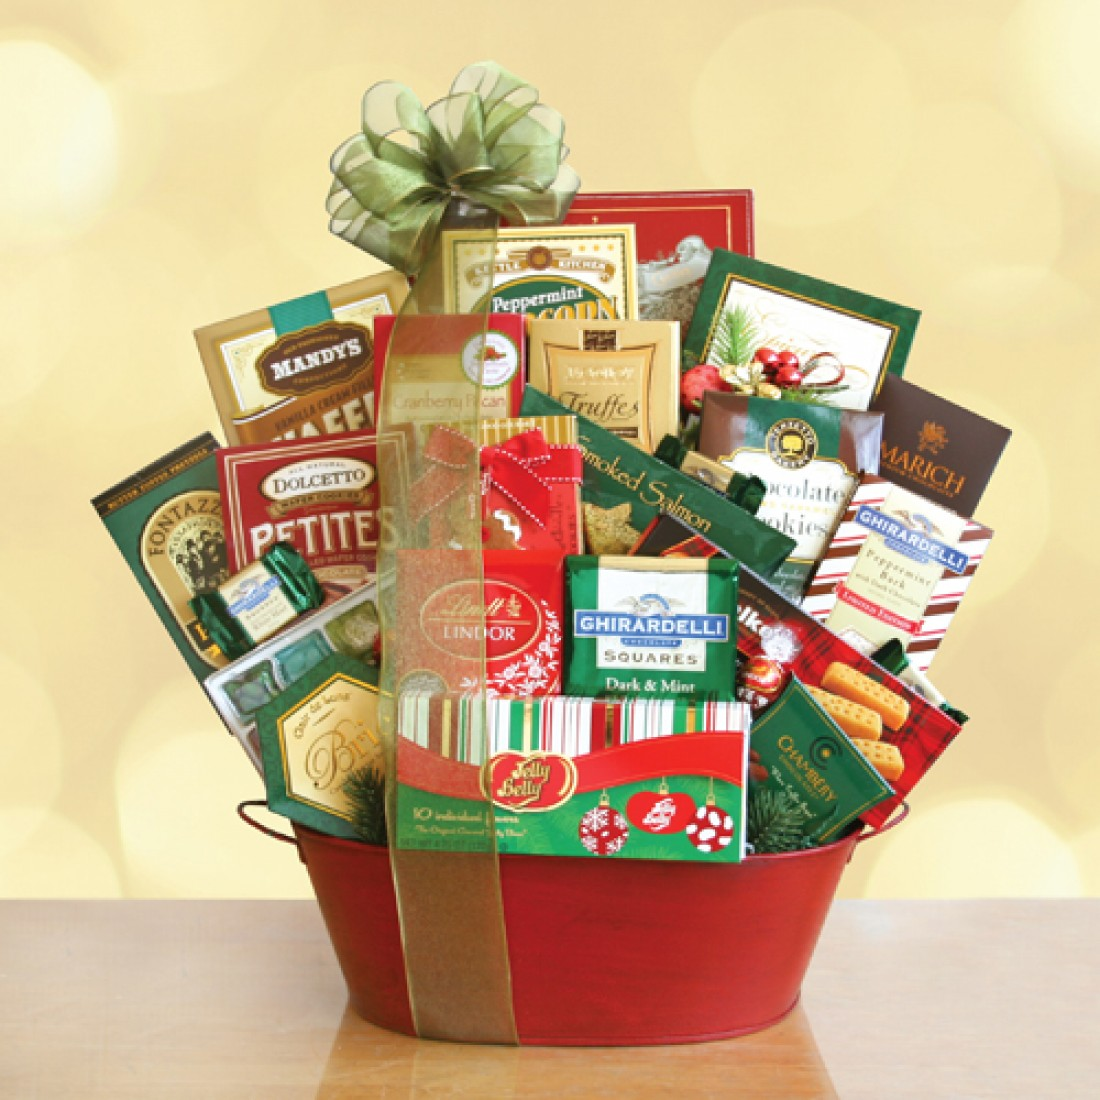 Free shipping gift baskets christmas gordmans coupon code gift baskets easter desserts cheryls message sugar free gift tower shipping information retail store locations request a catalog negle Image collections